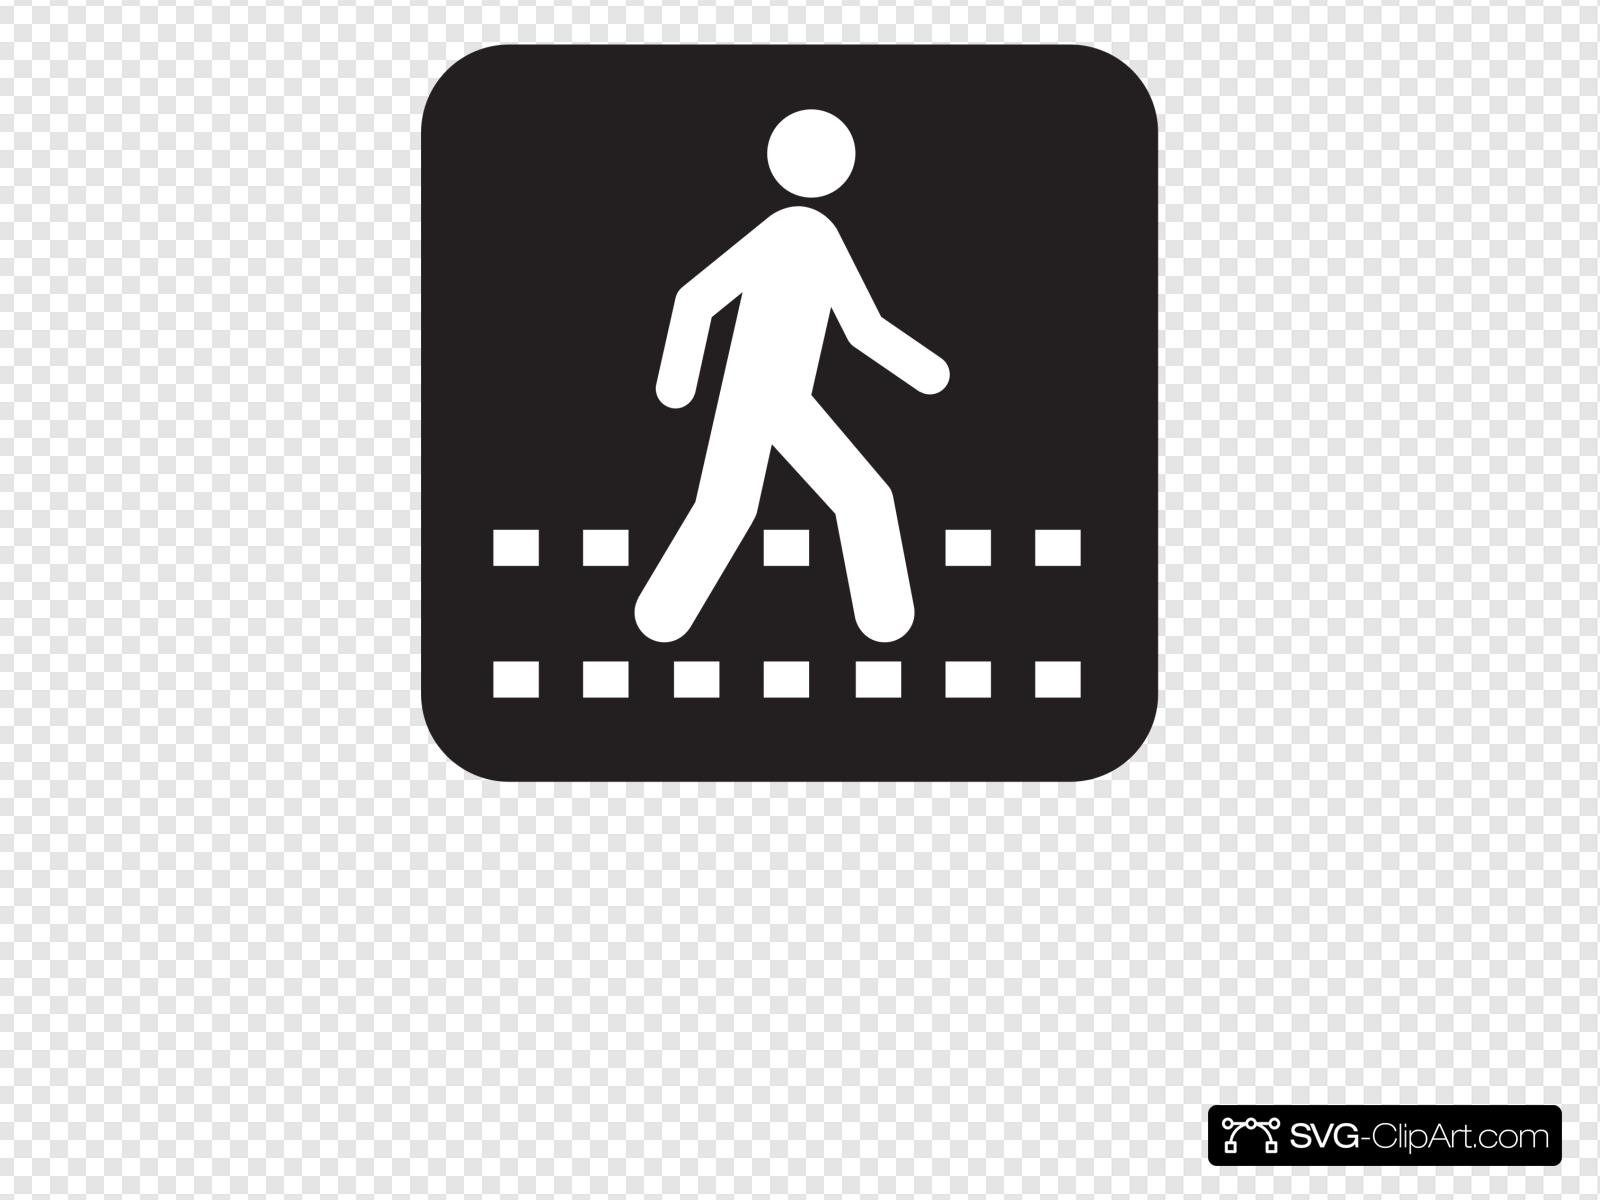 Pedestrian Crossing Black Clip art, Icon and SVG.